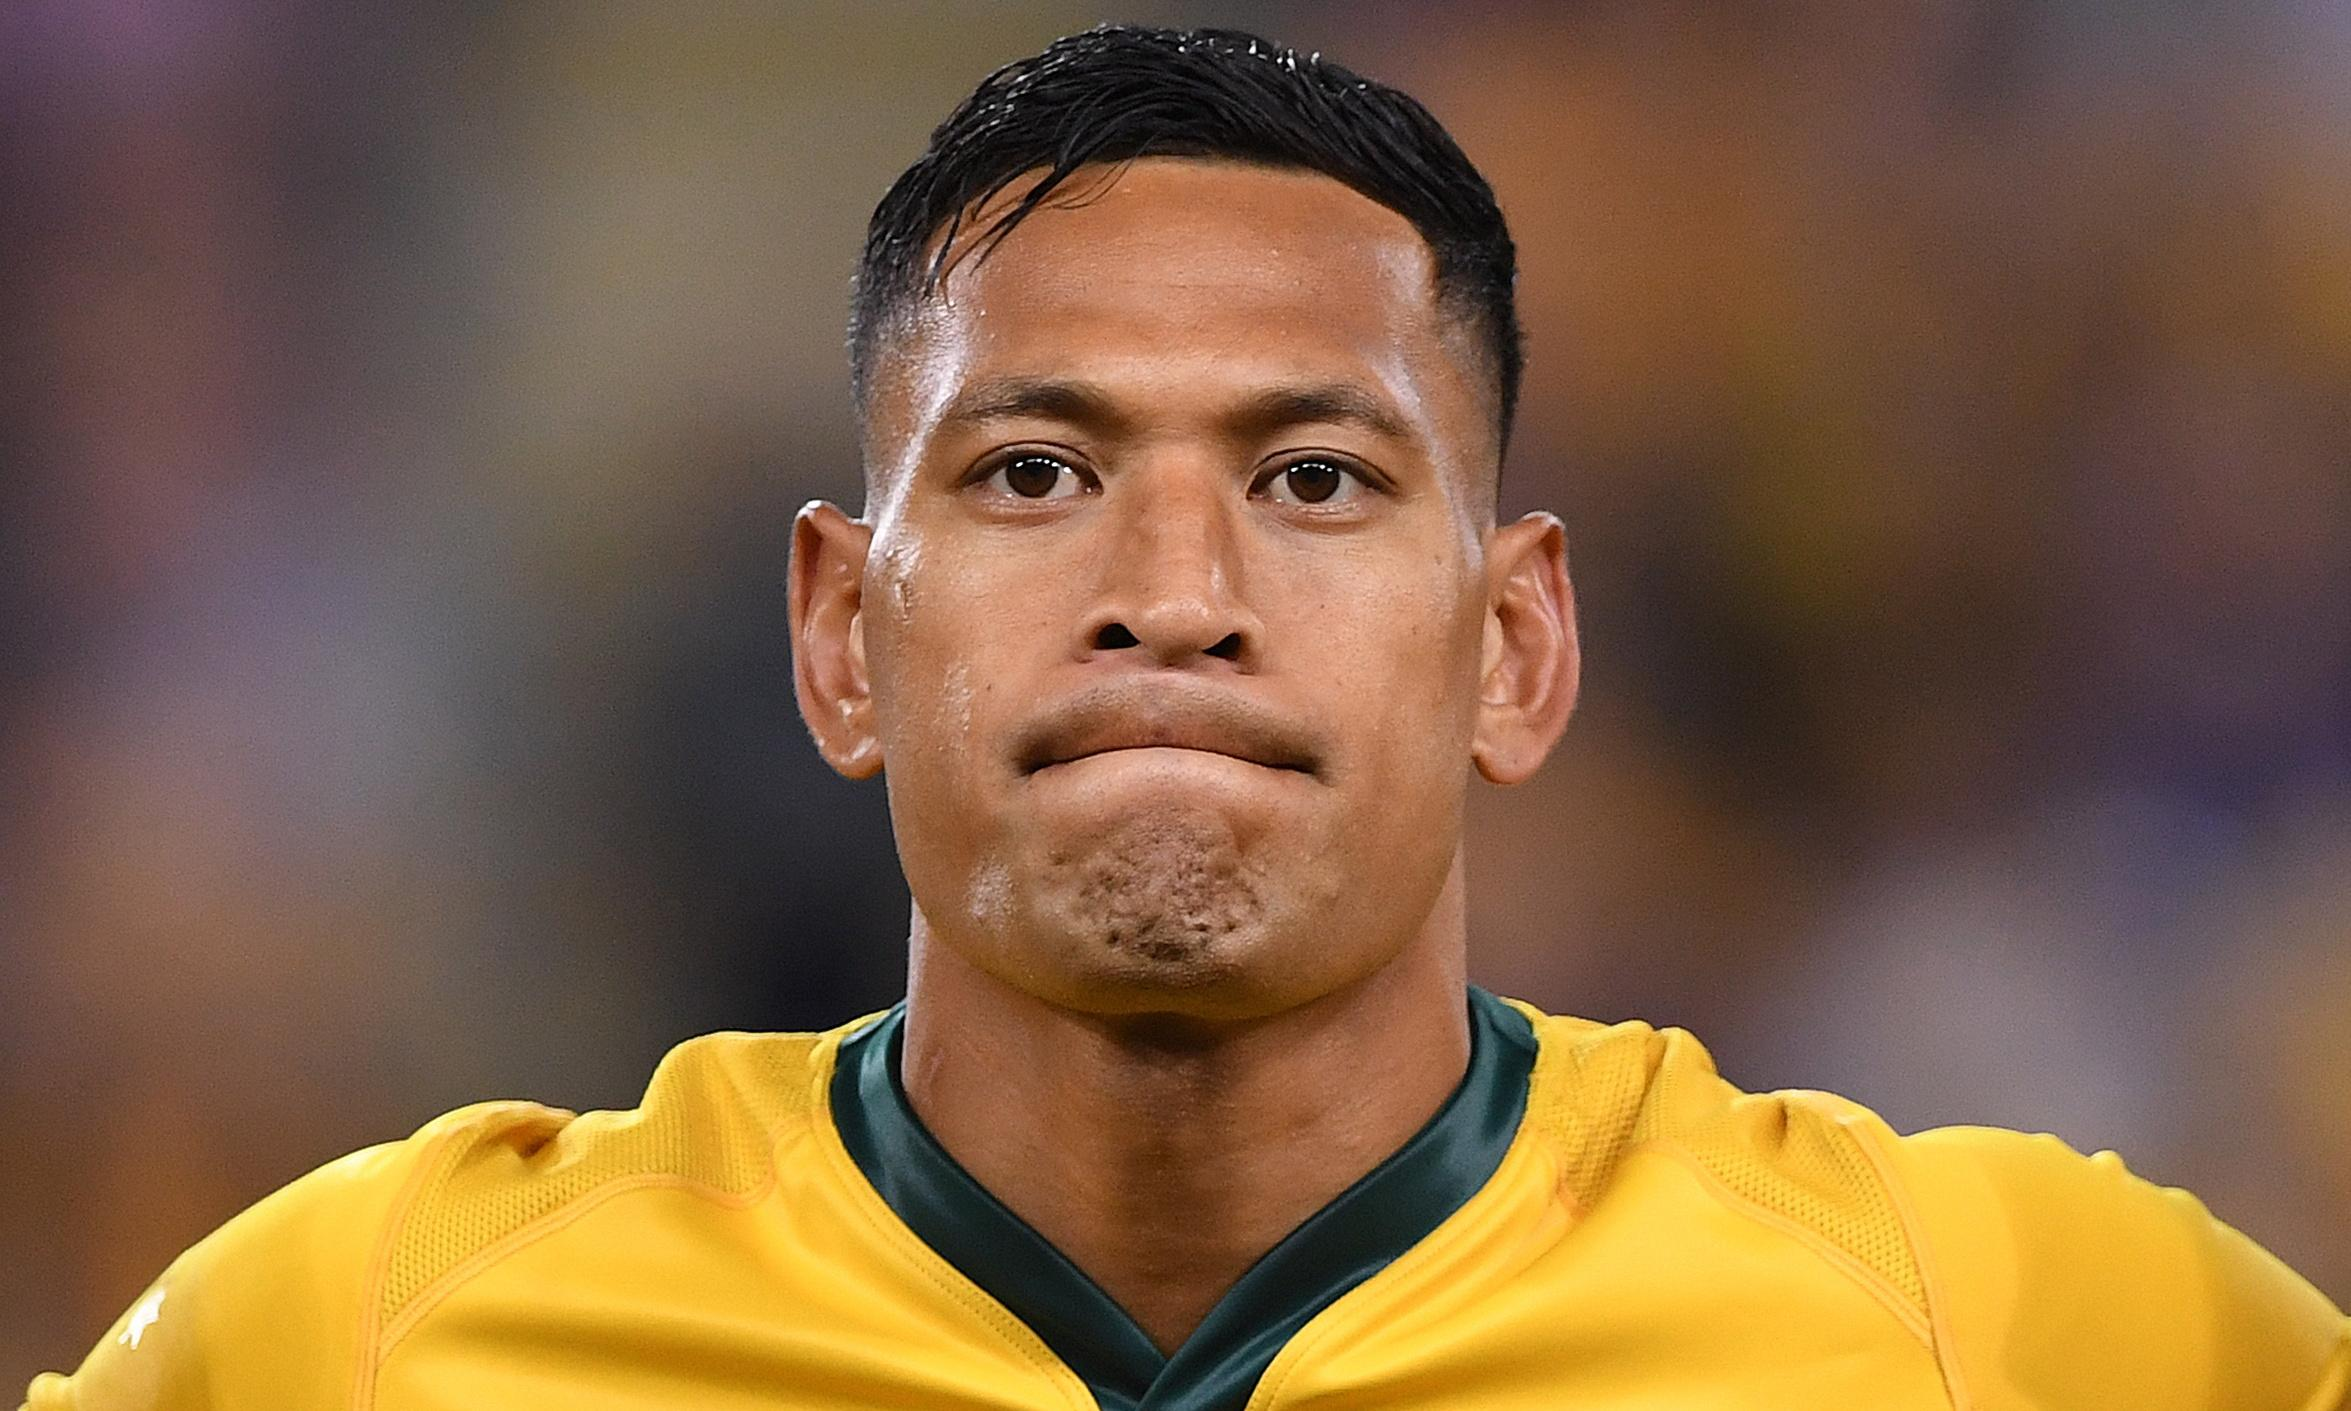 Israel Folau says GoFundMe gave in to 'campaign of discrimination'